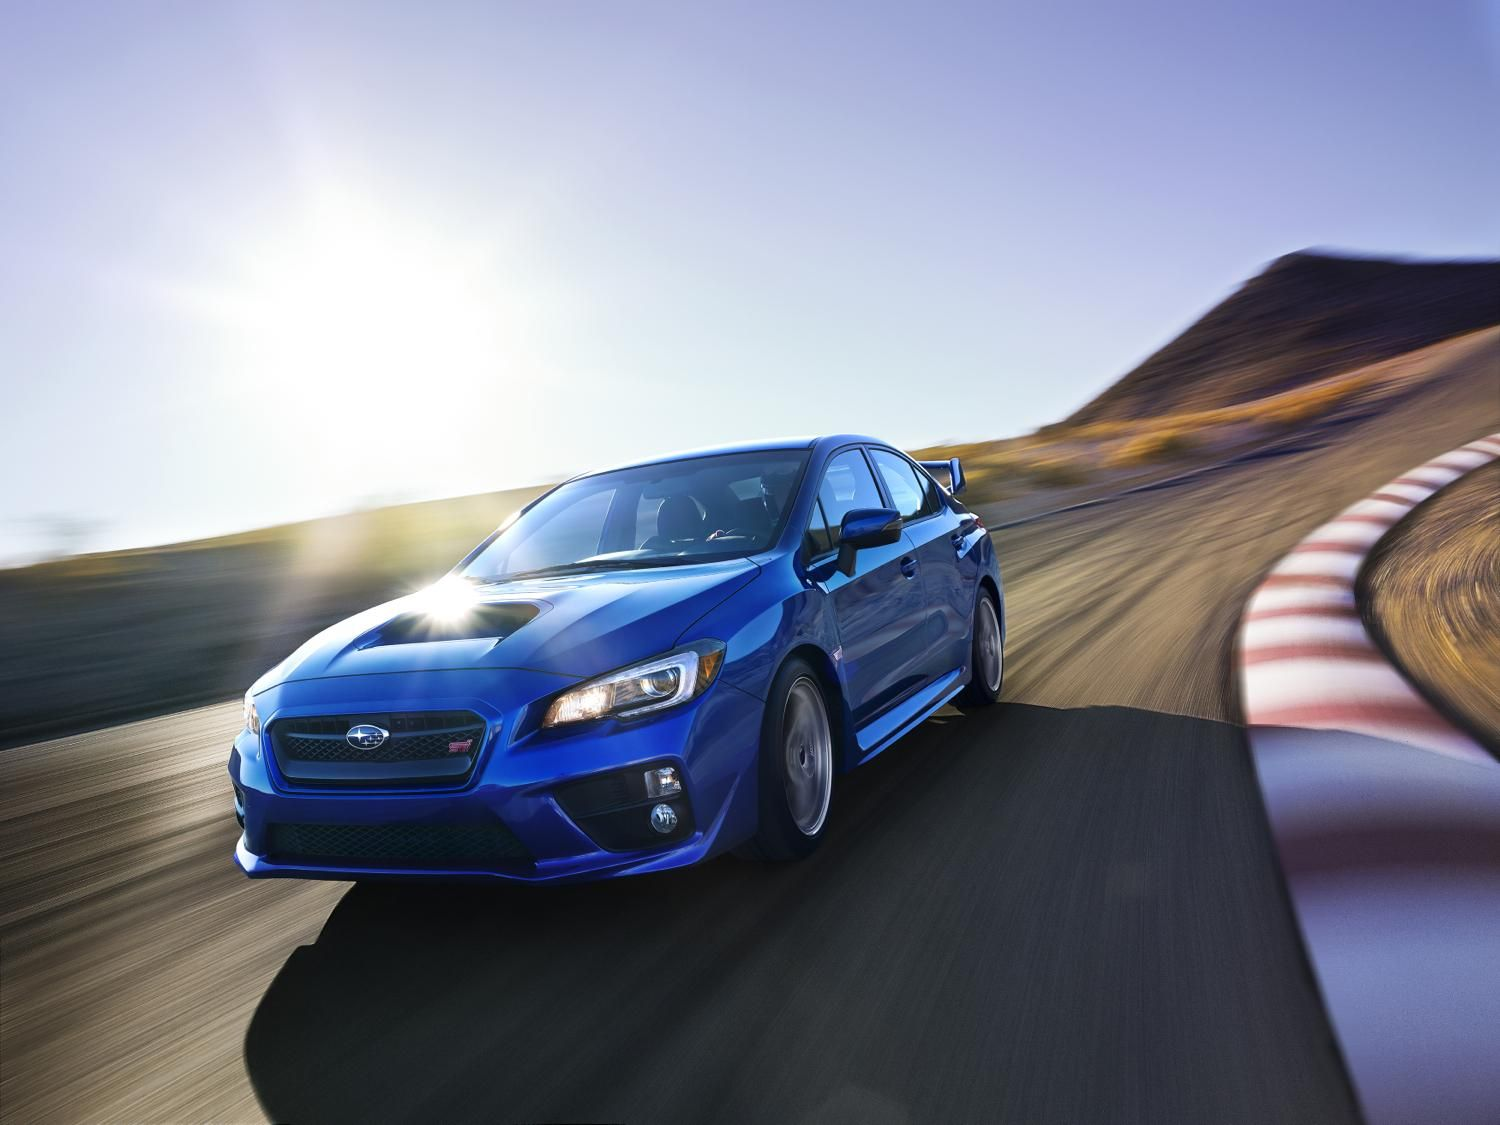 Subaru has unveiled the 2015 wrx sti launch edition the best equipped version of the high performance model ever and will be available exclusively as a